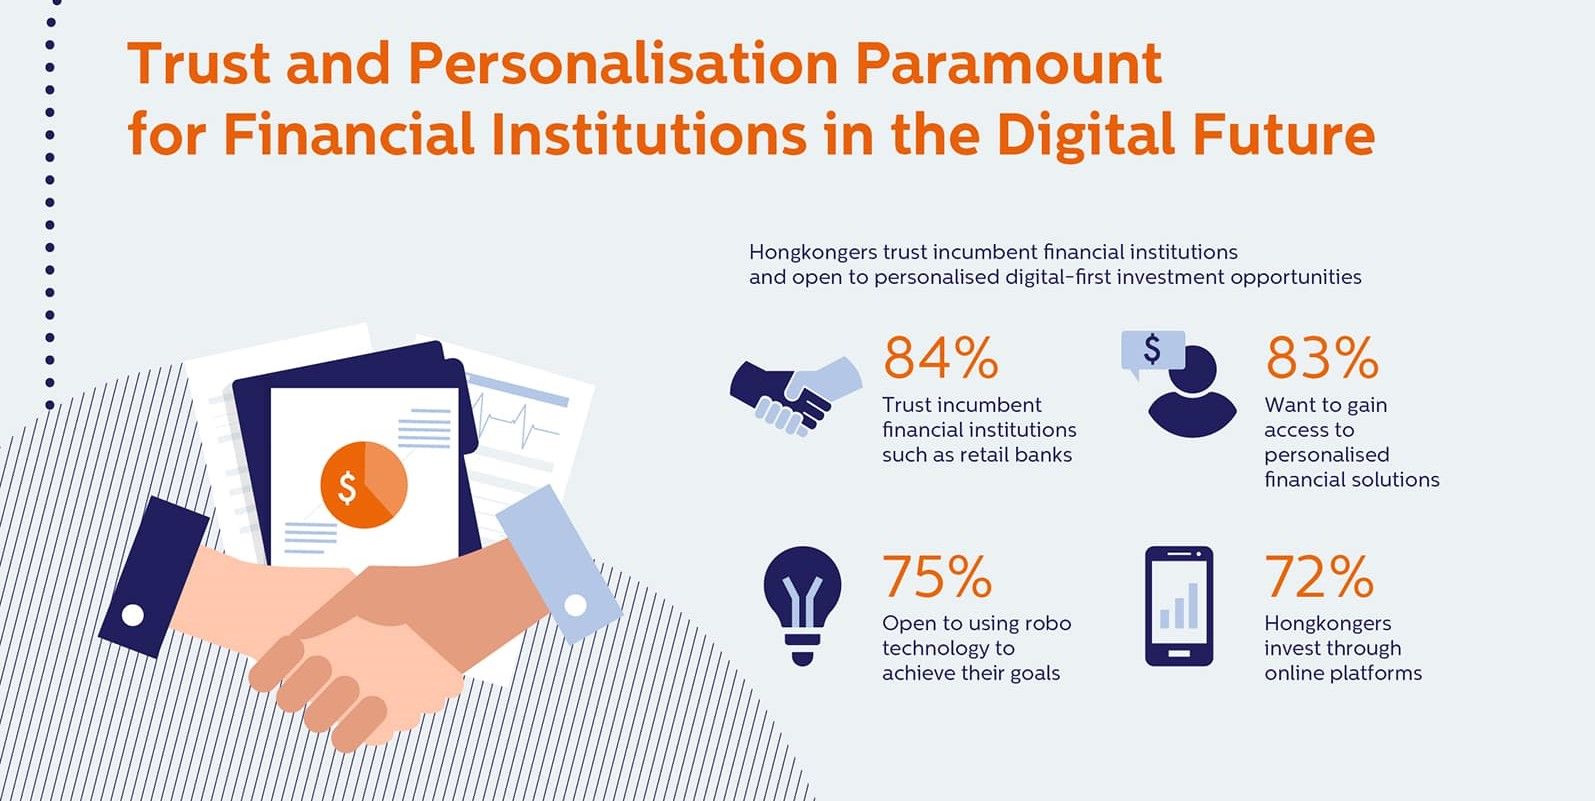 Trust and Personalization Paramount for Financial Institutions in the Digital Future